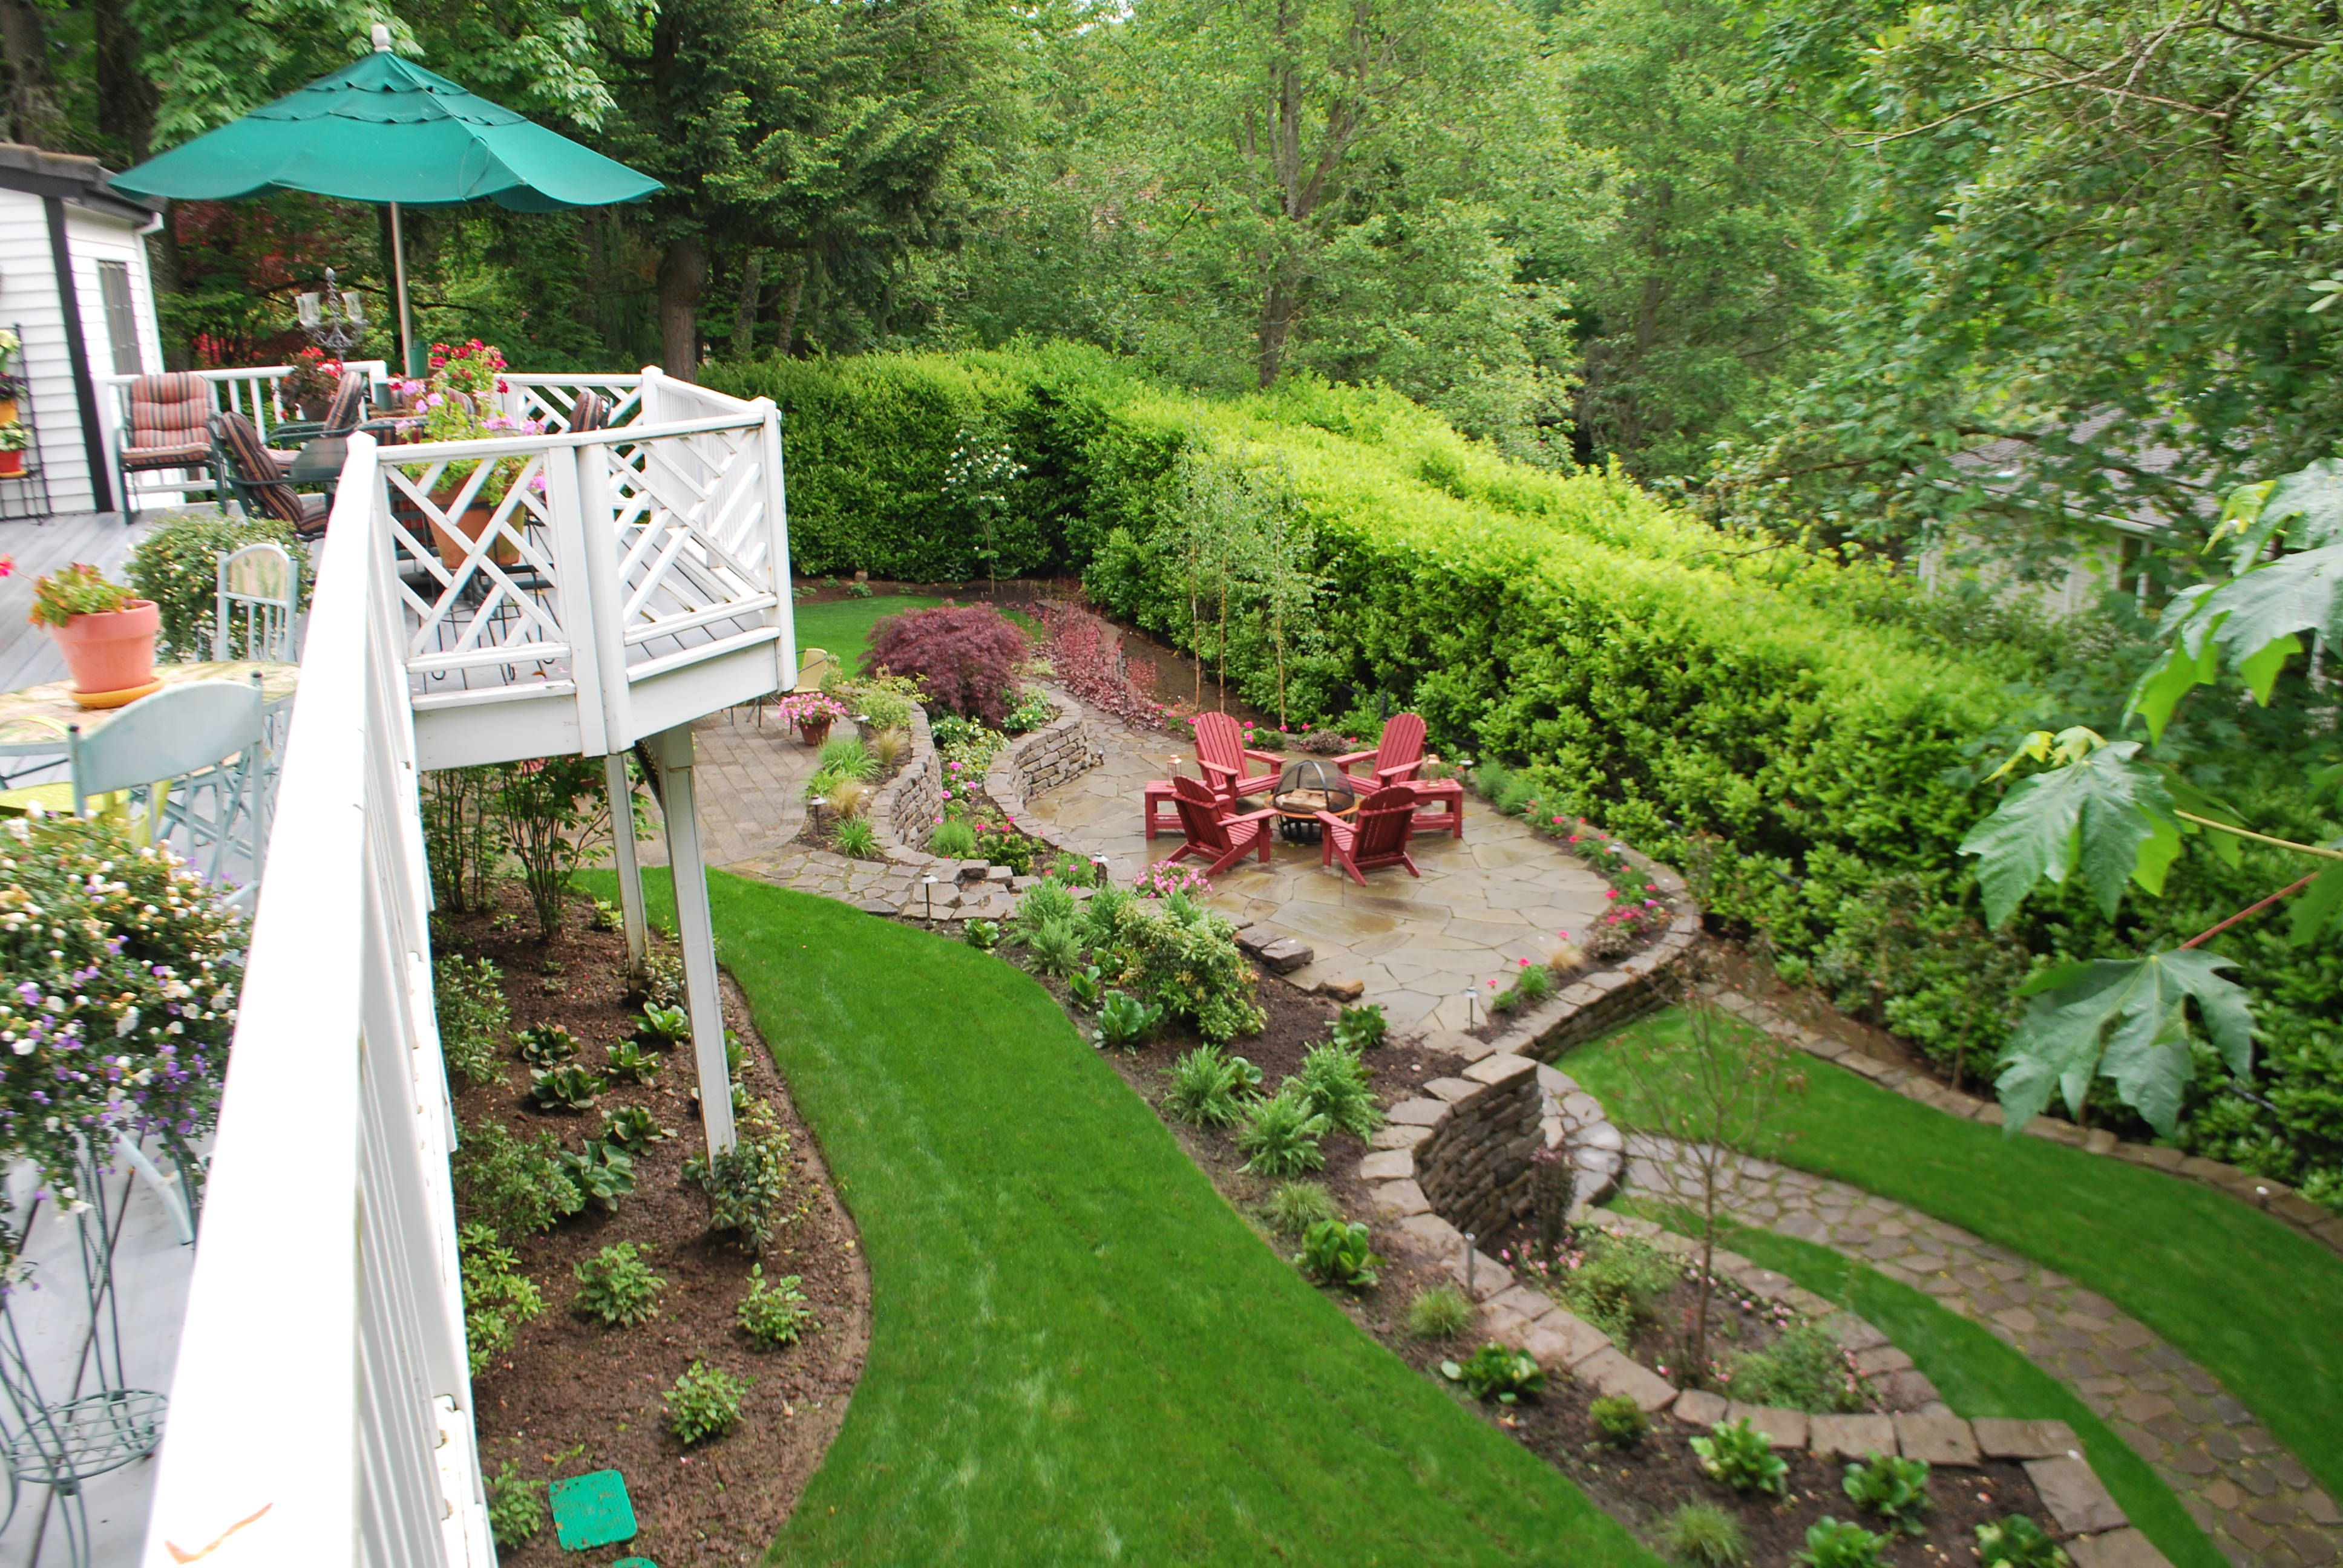 One such company is Landscaping , which offers unique landscaping designs and products for onsite, building, and landscape construction purposes and for